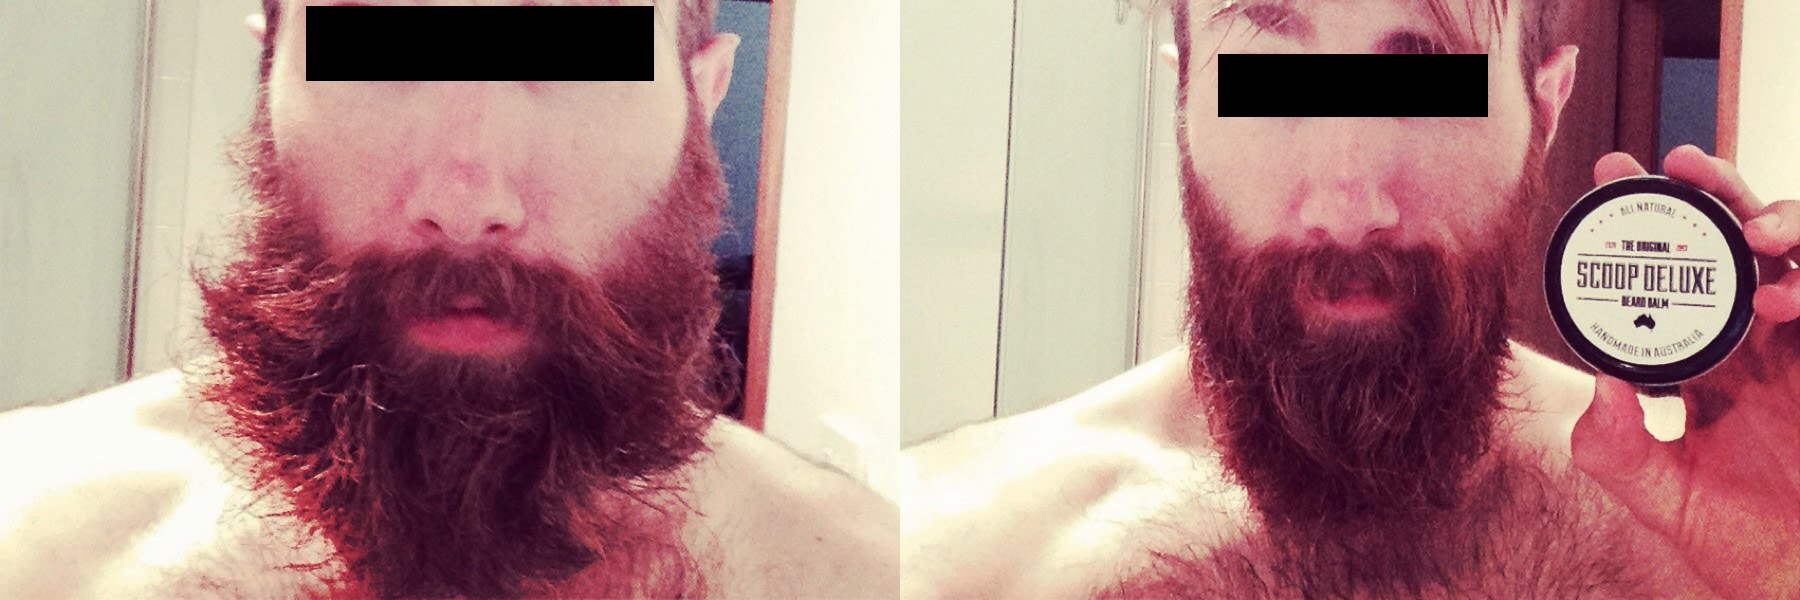 Beard Balm \u0026amp; Oil: Before and After - Where To Buy Beard Oil